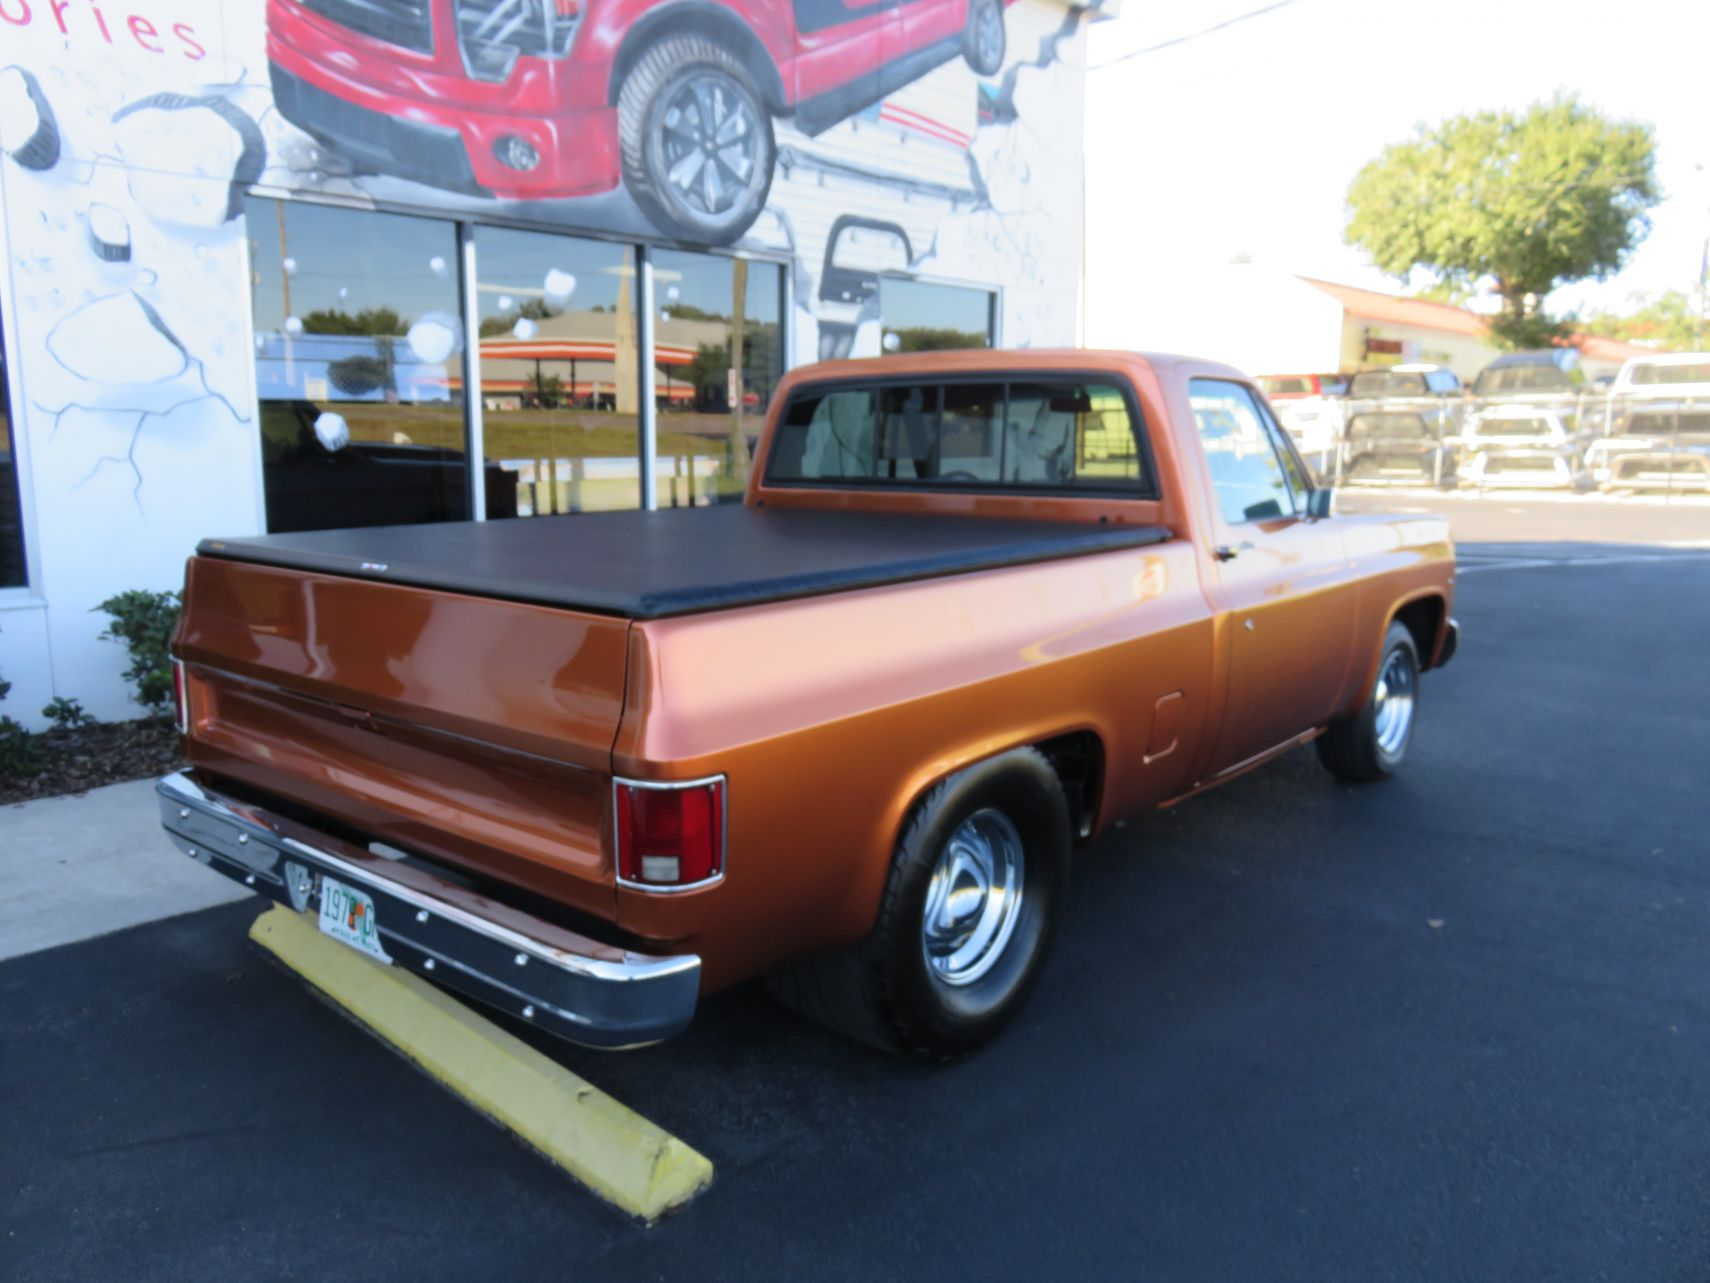 1979 Copper GMC Truxedo Truxport by TopperKING in Brandon, FL 813-689-2449 or Clearwater, FL 727-530-9066. Call today to start on your truck!